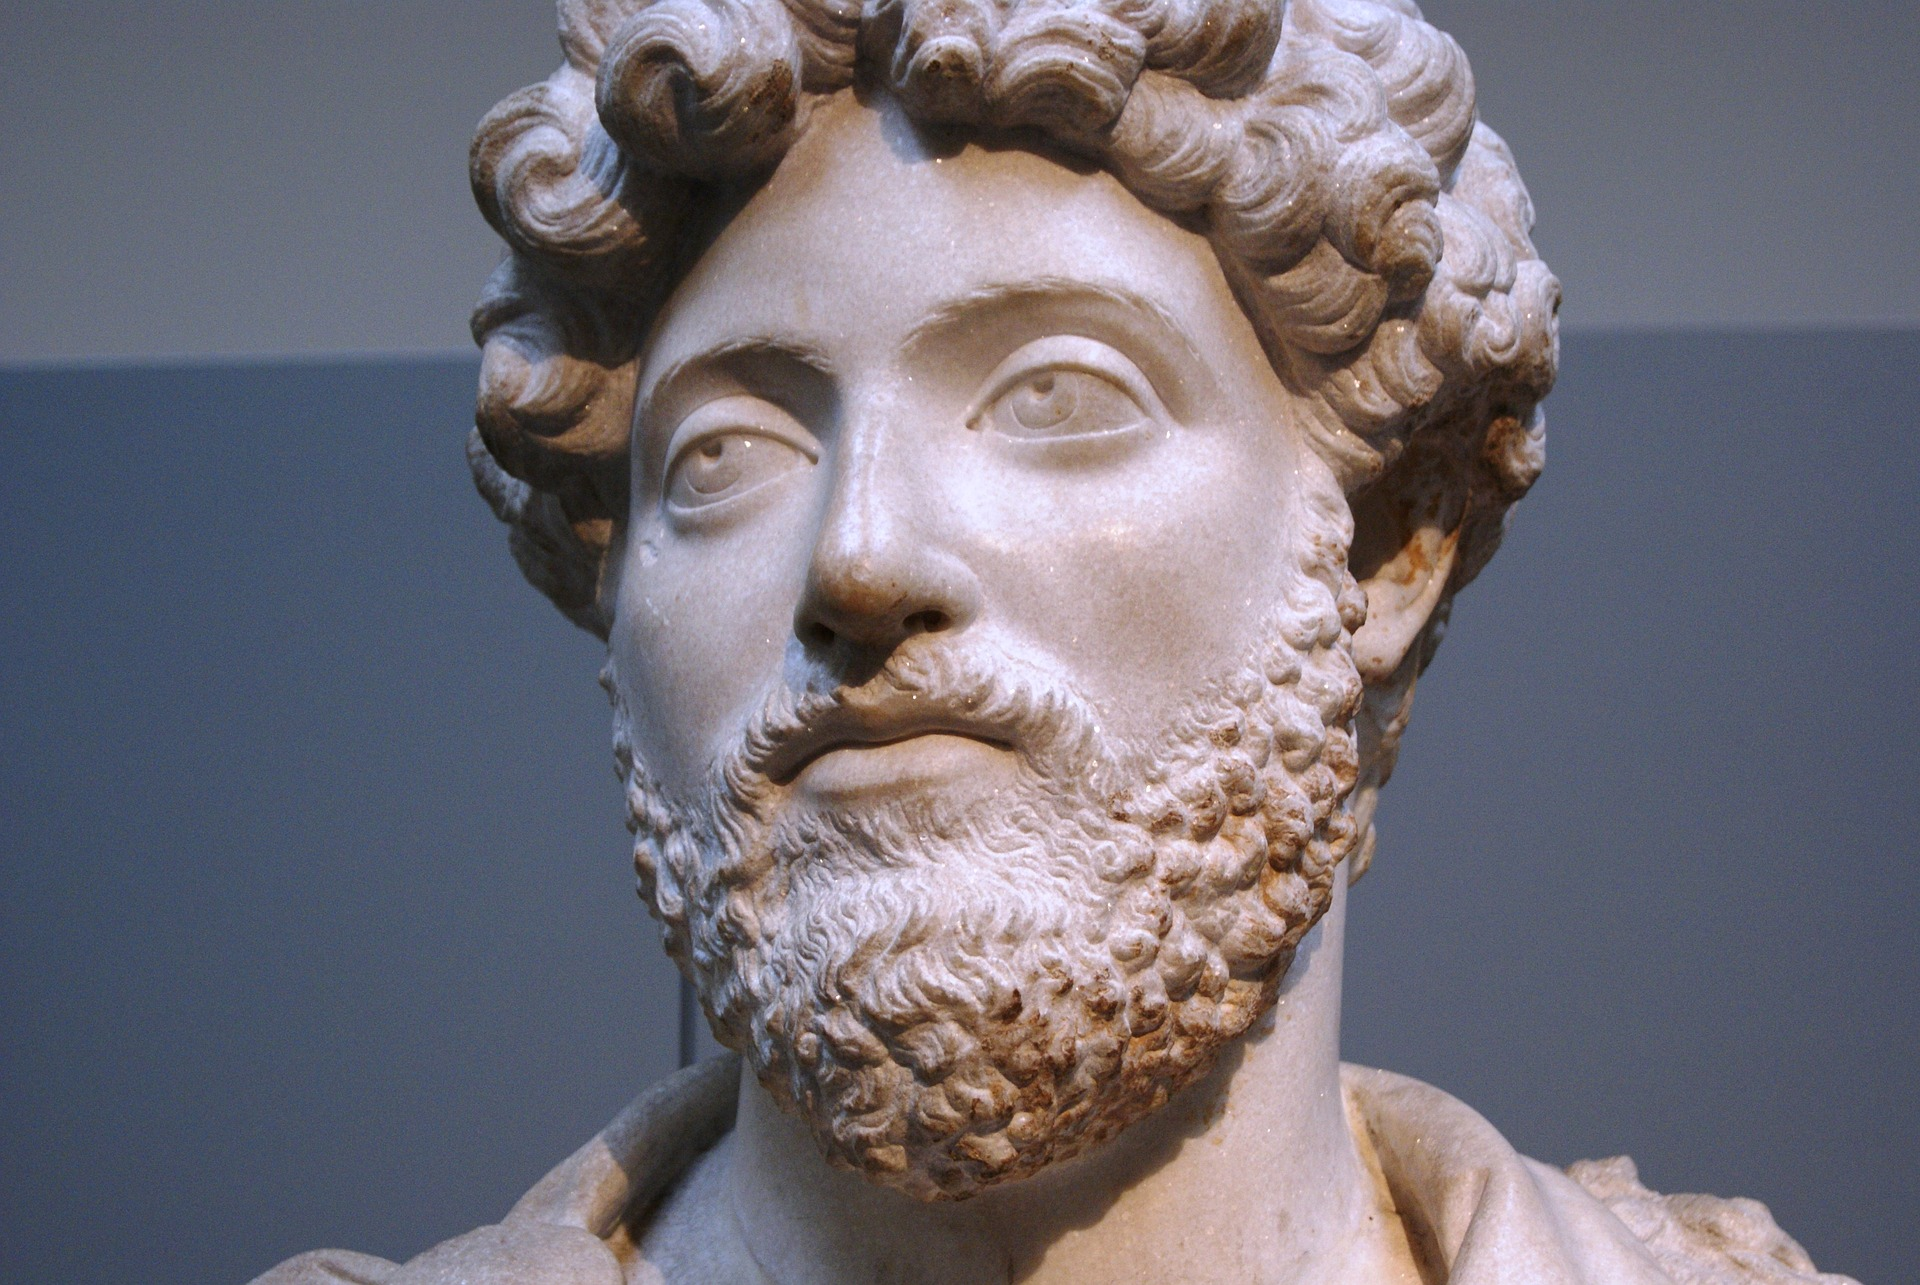 A statue of the Roman Emperor Marcus Aurelius